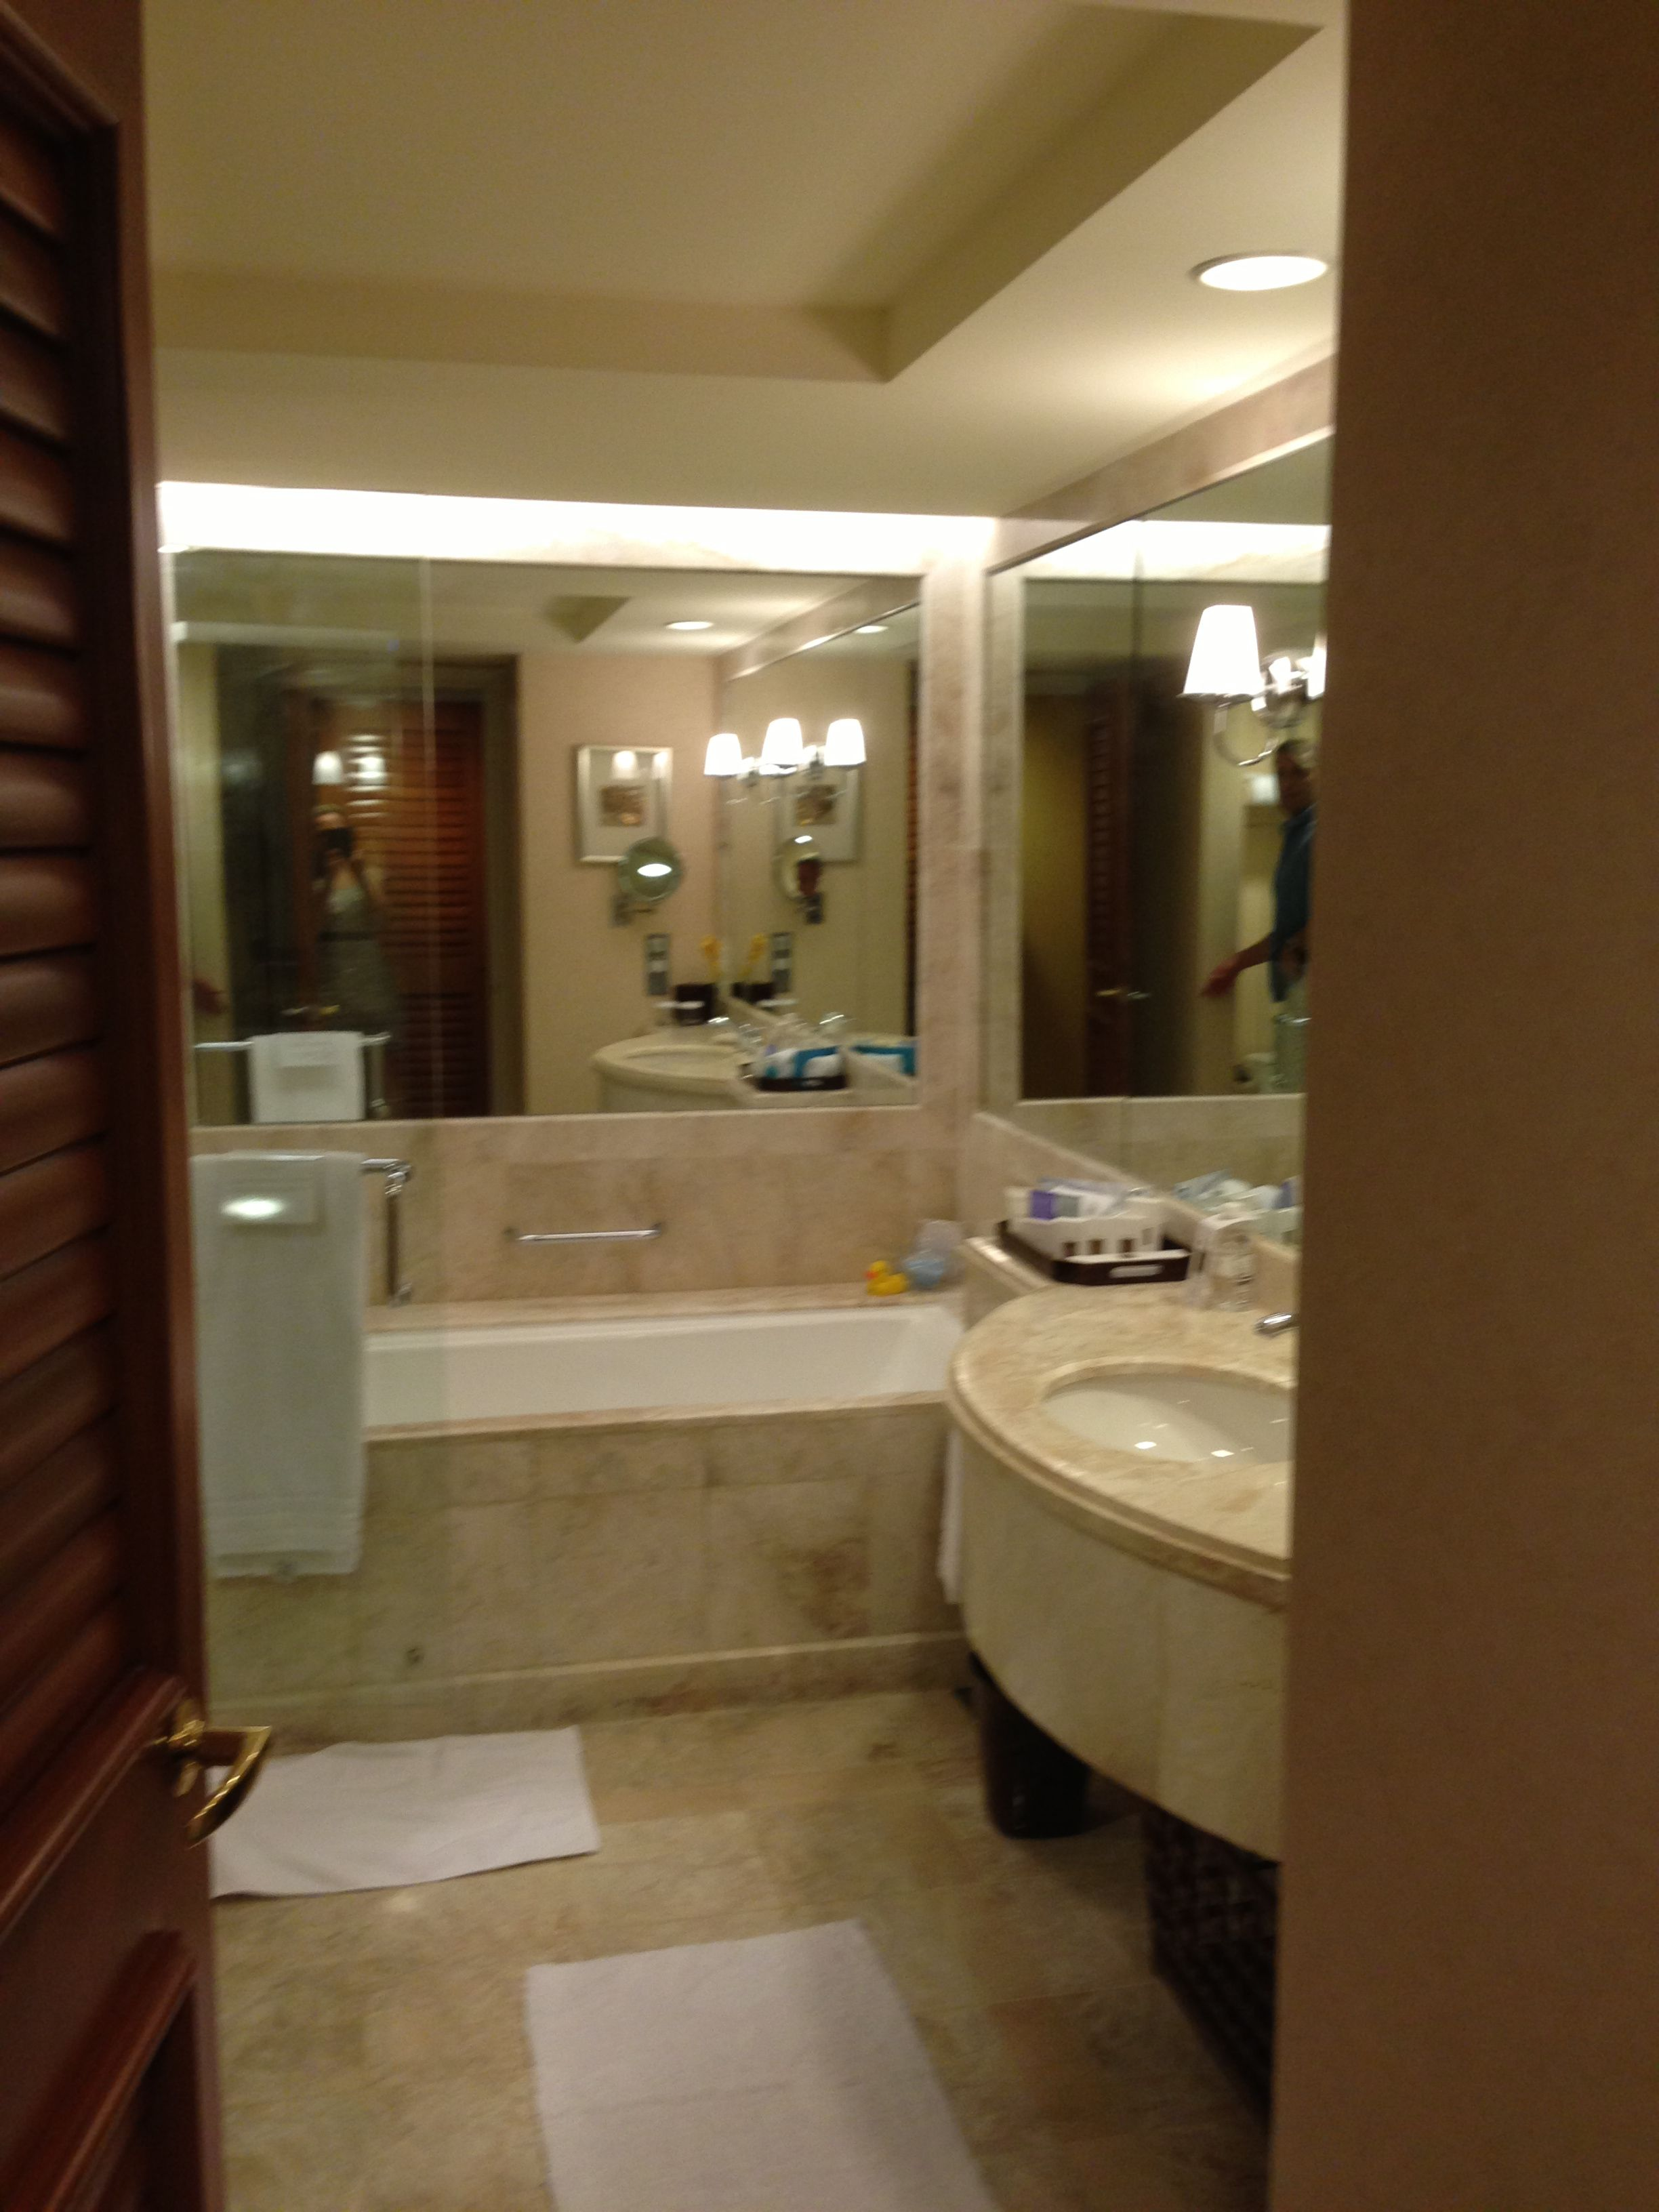 Executive Room Bathroom at the Conrad Singapore Hotel